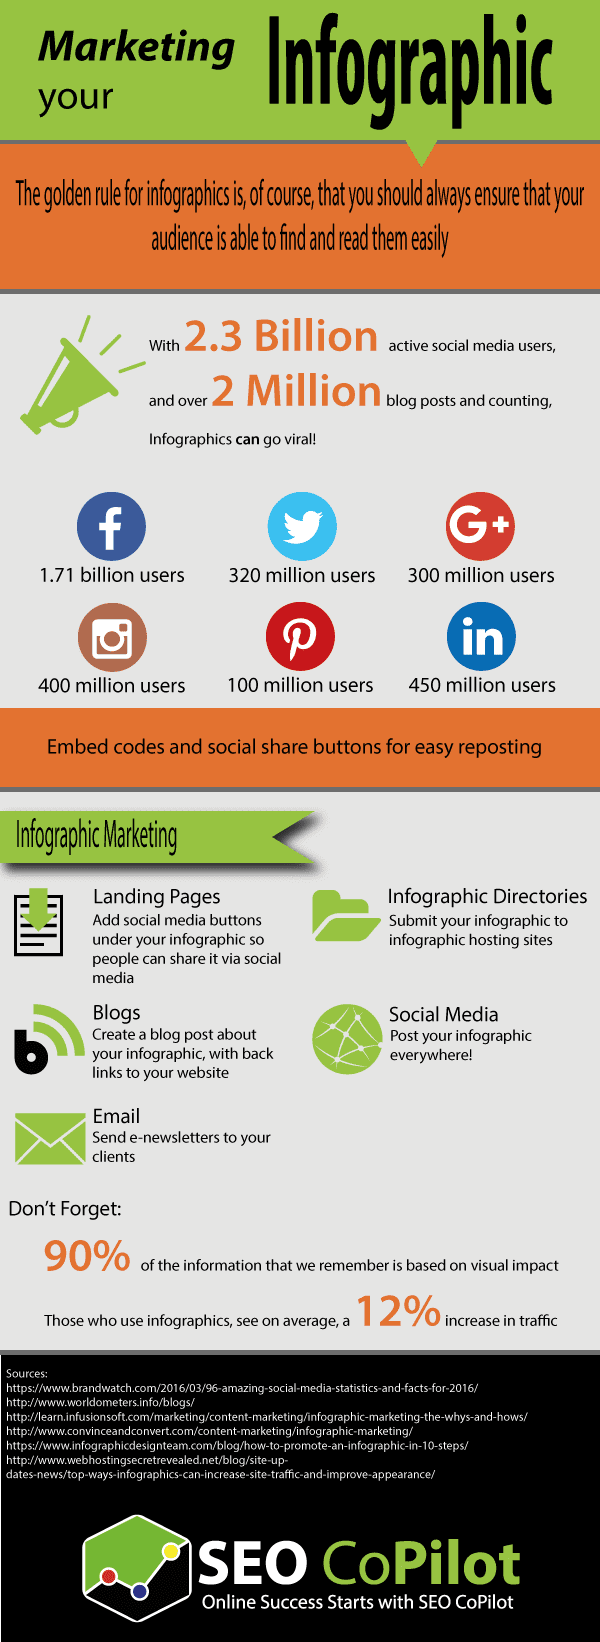 Marketing your infographic